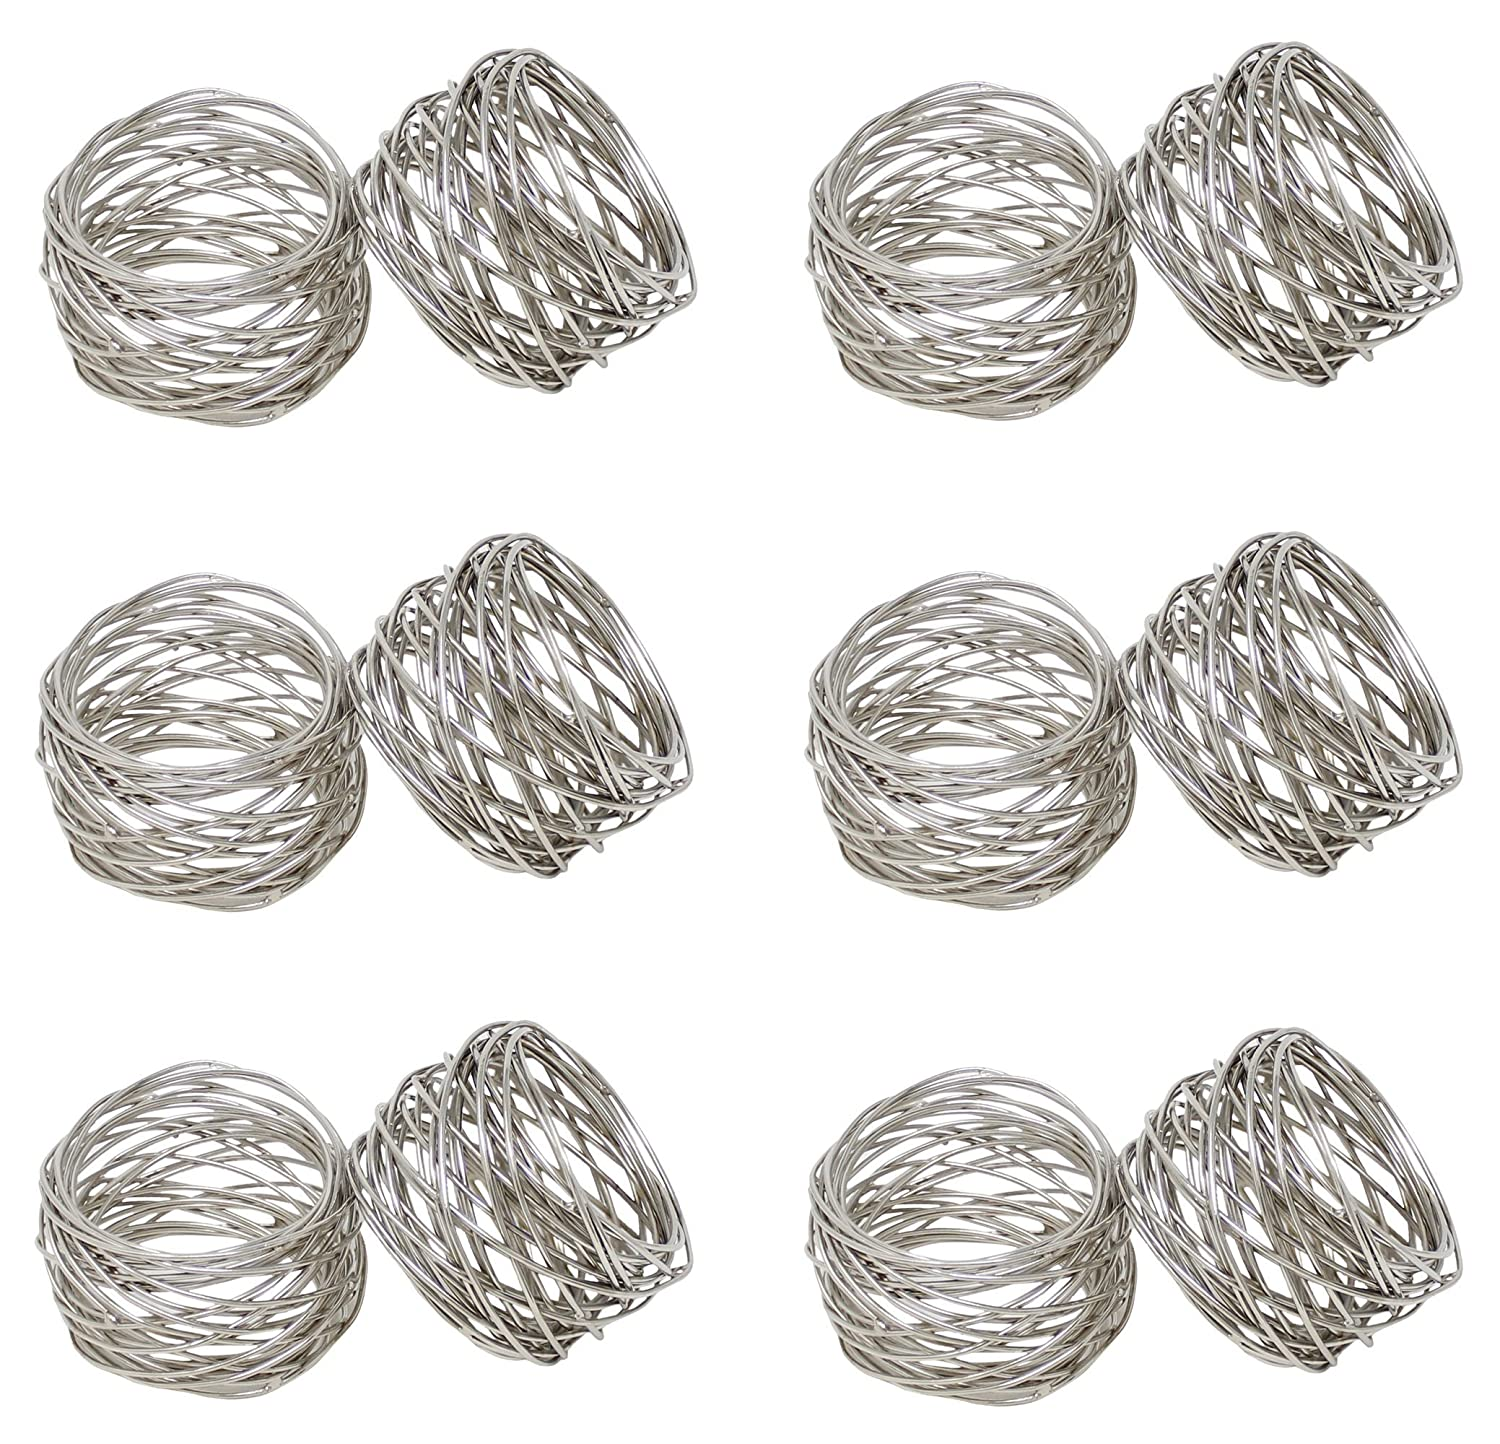 SKAVIJ Round Mesh Napkin Rings Set of 12 Silver for Wedding Banquet Dinner Decor Favor M-SNR-001-s12